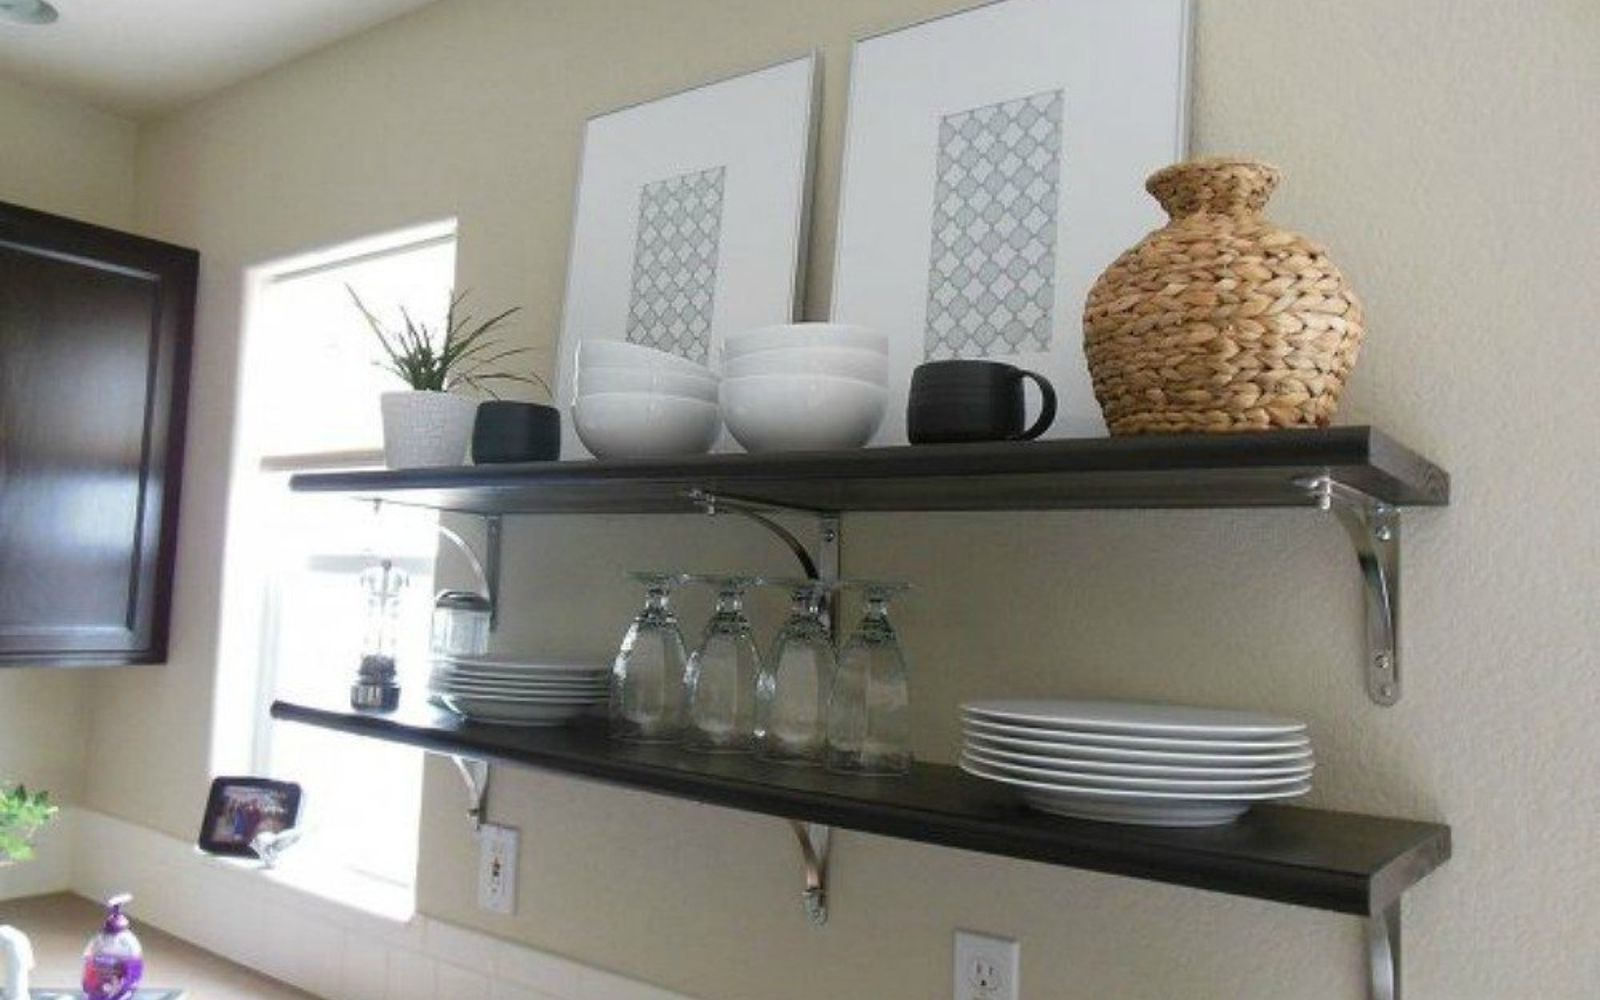 s 15 clever ways to add more kitchen storage space with open shelves, kitchen design, shelving ideas, storage ideas, Use them to display artwork